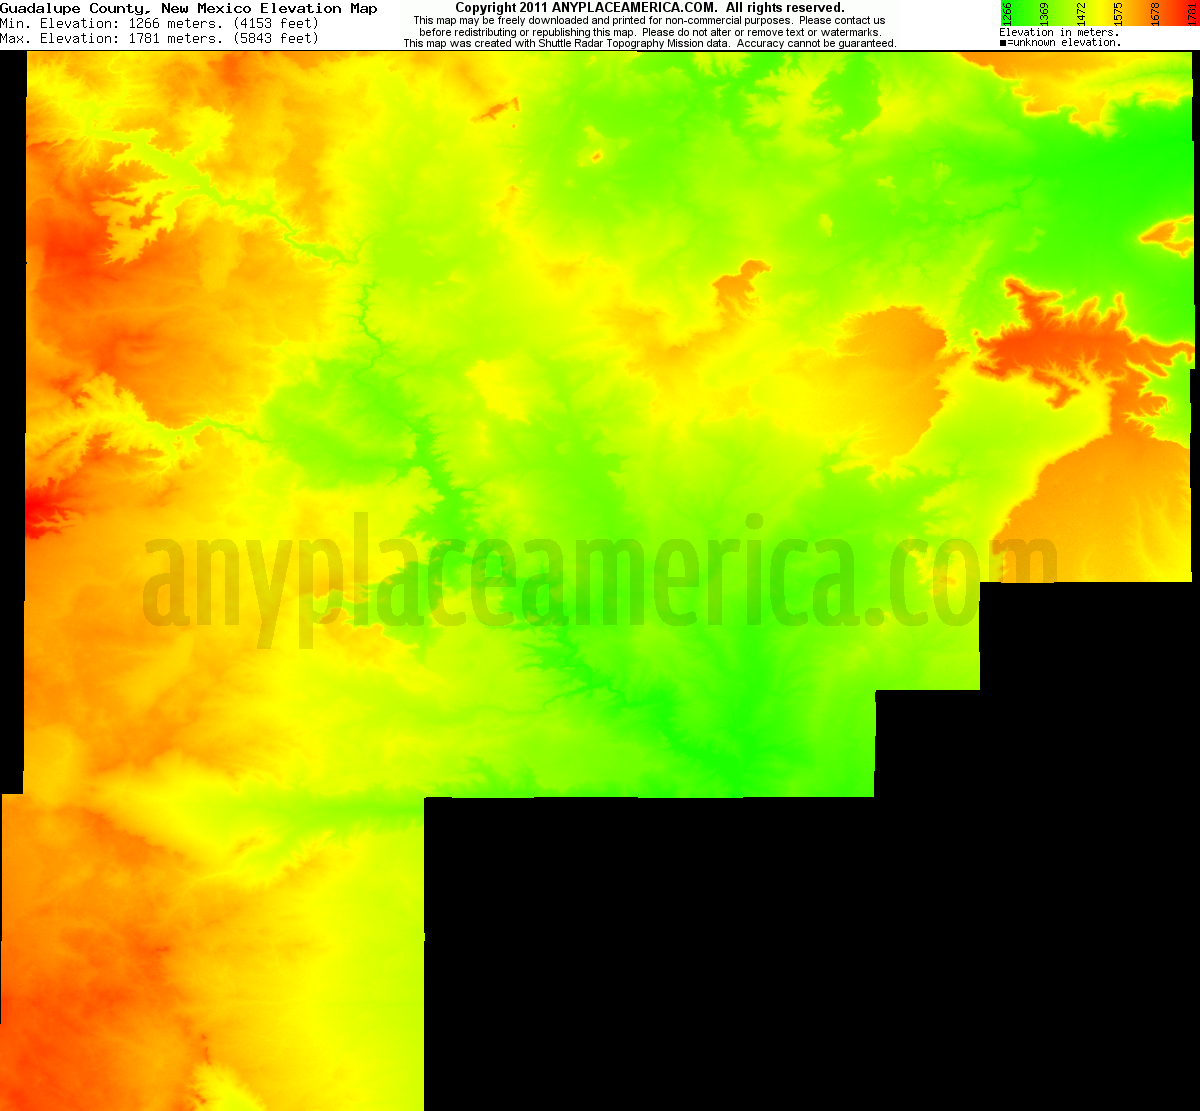 New mexico guadalupe county santa rosa - Download Guadalupe County Elevation Map